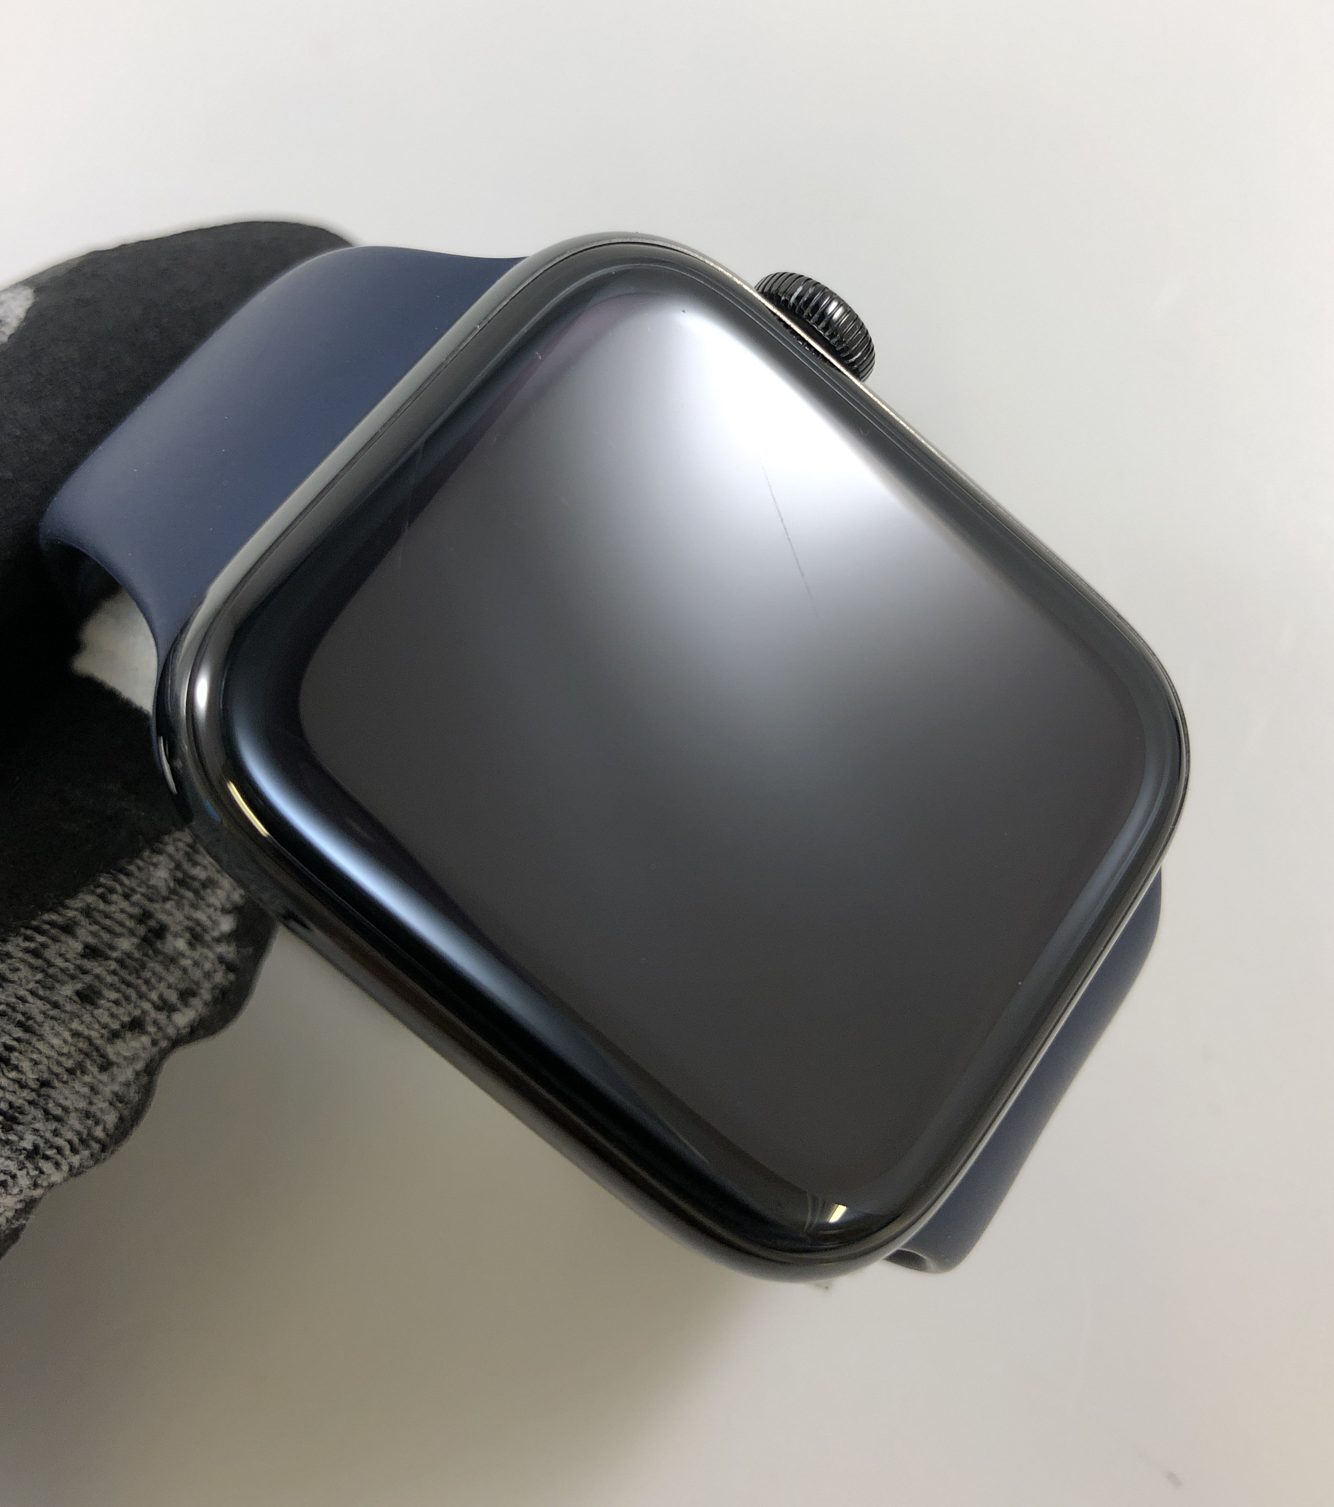 Watch Series 4 Steel Cellular (44mm), Space Black, Midnight Blue Sport Band, bild 3